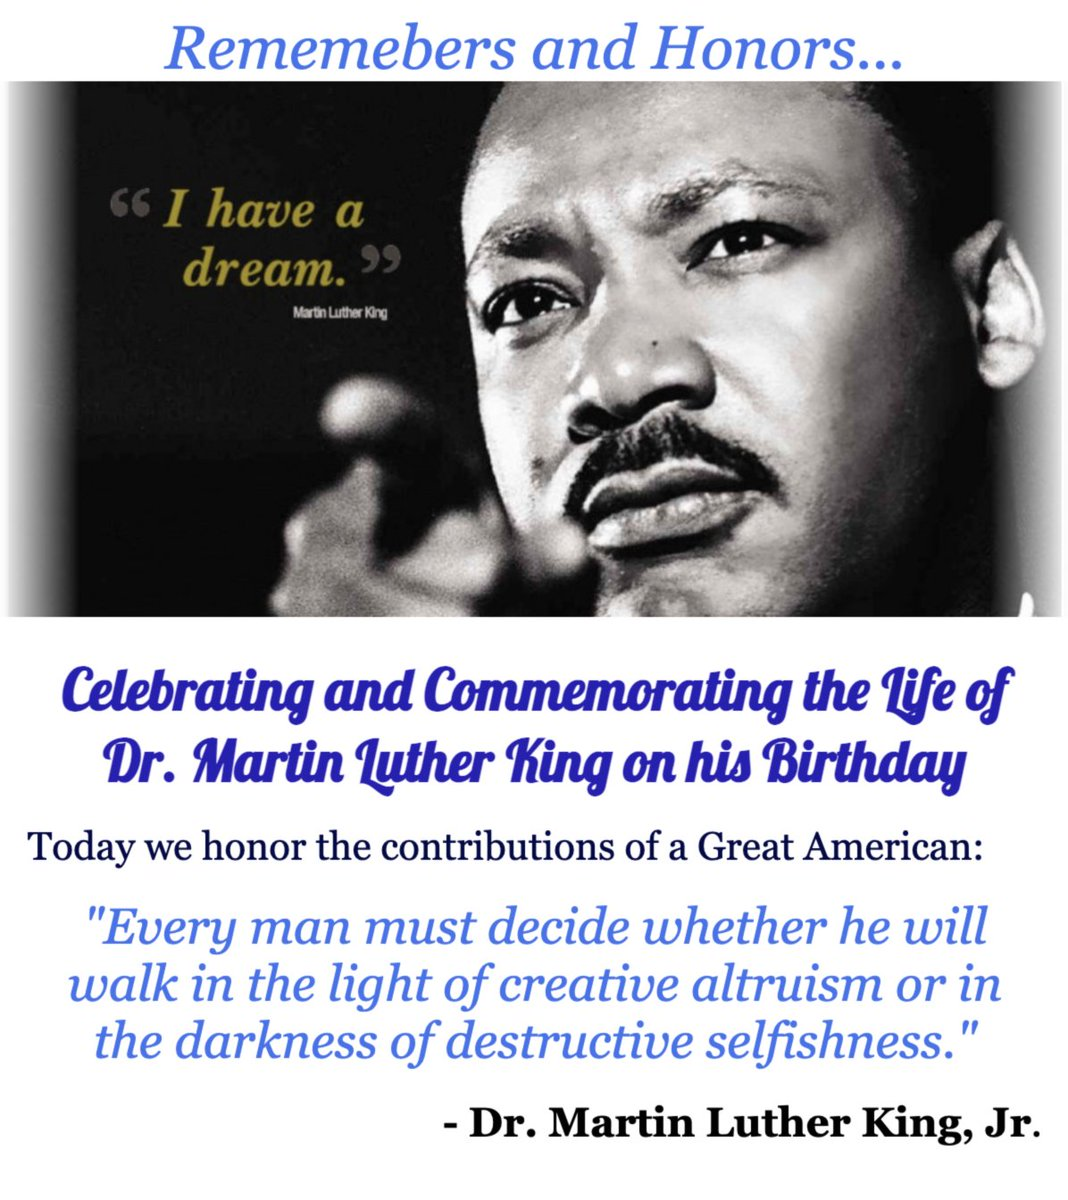 """Today we honor the contributions of a Great American: Dr. Martin Luther King, Jr.  """"Every man must decide whether he will walk in the light of creative altruism or in the darkness of destructive selfishness.""""  #MLK #IHaveADream #FreedomOfSpeech"""